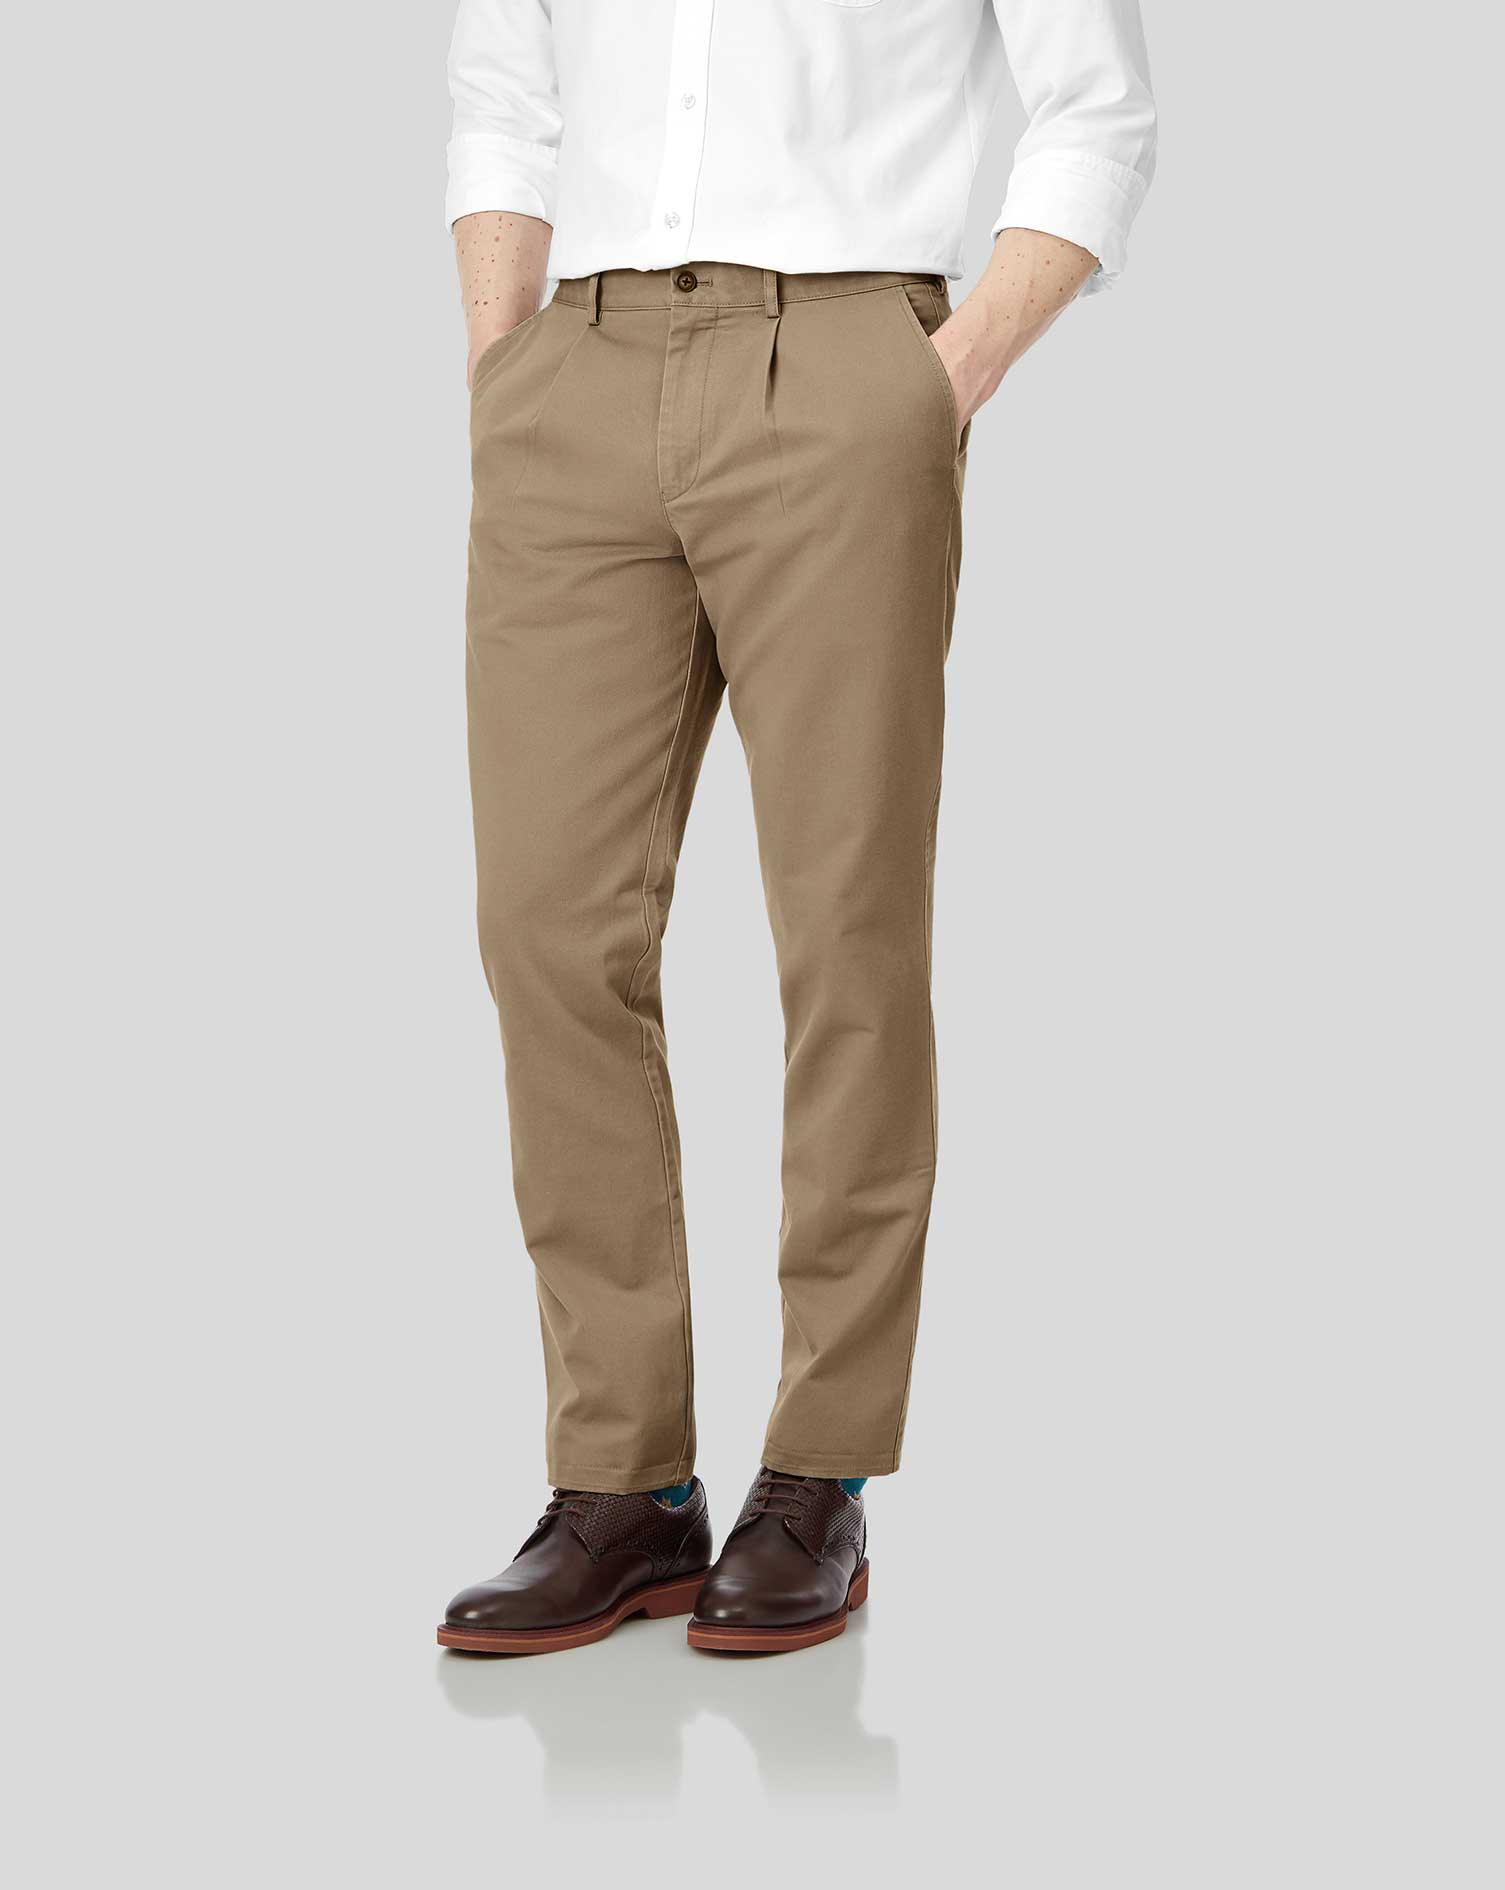 Tan Single Pleat Soft Washed Cotton Chino Trousers Size W38 L32 by Charles Tyrwhitt